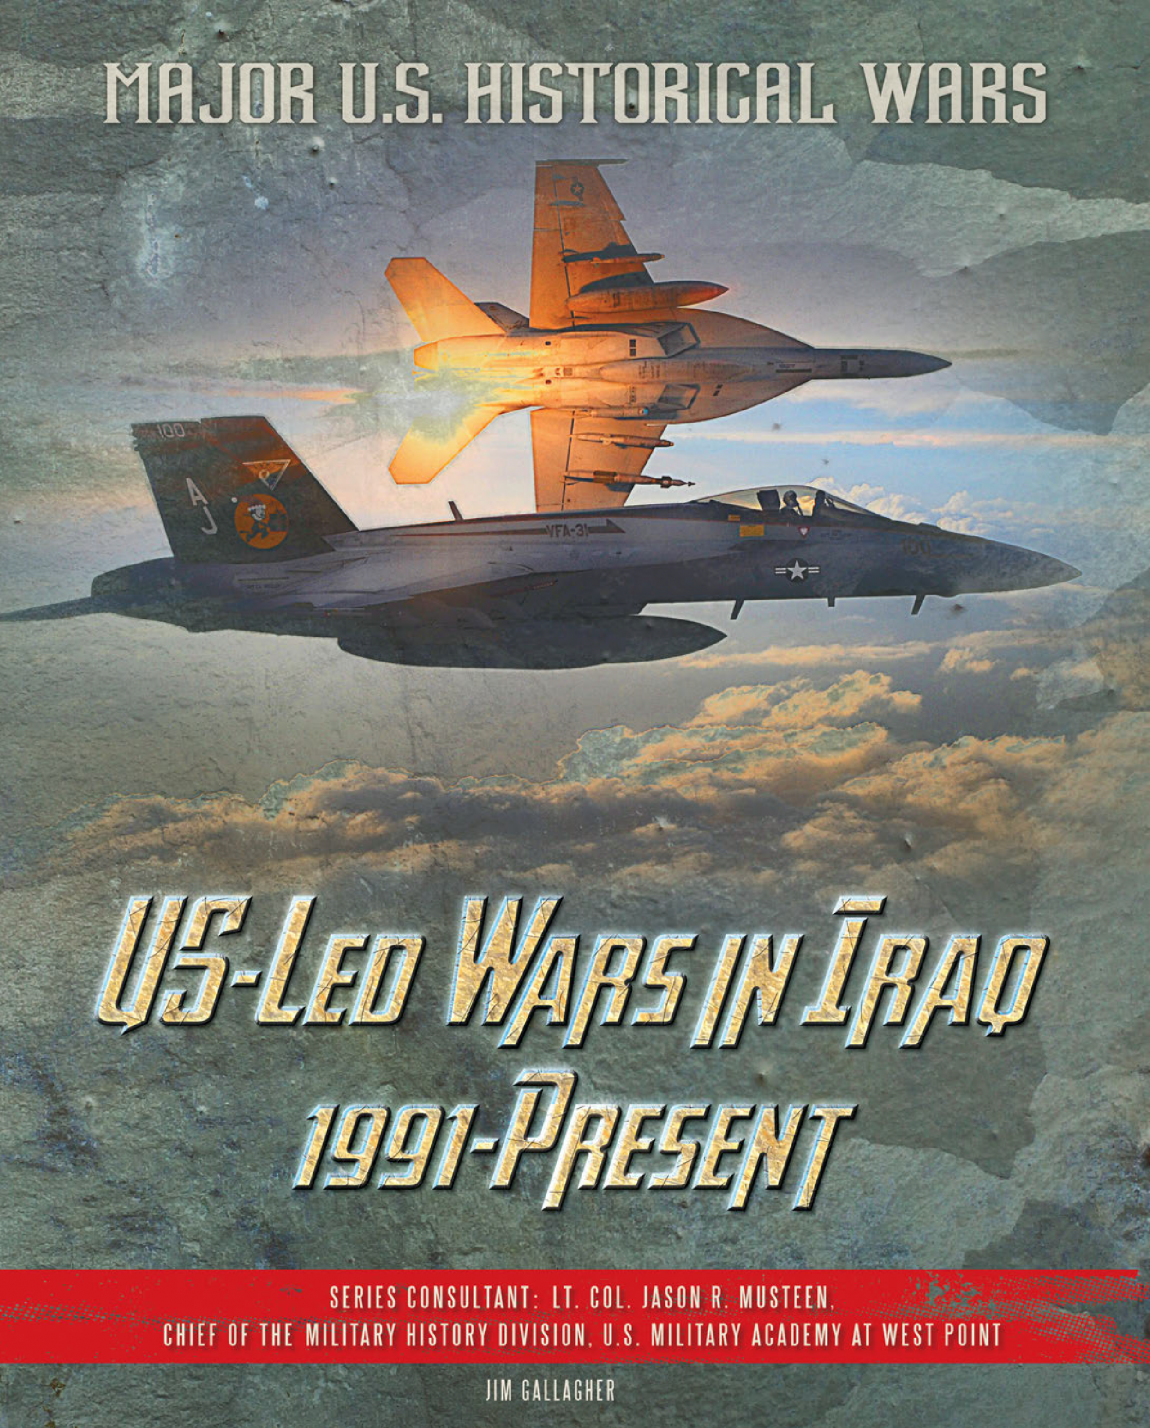 US-led-wars-in-Iraq-01.png